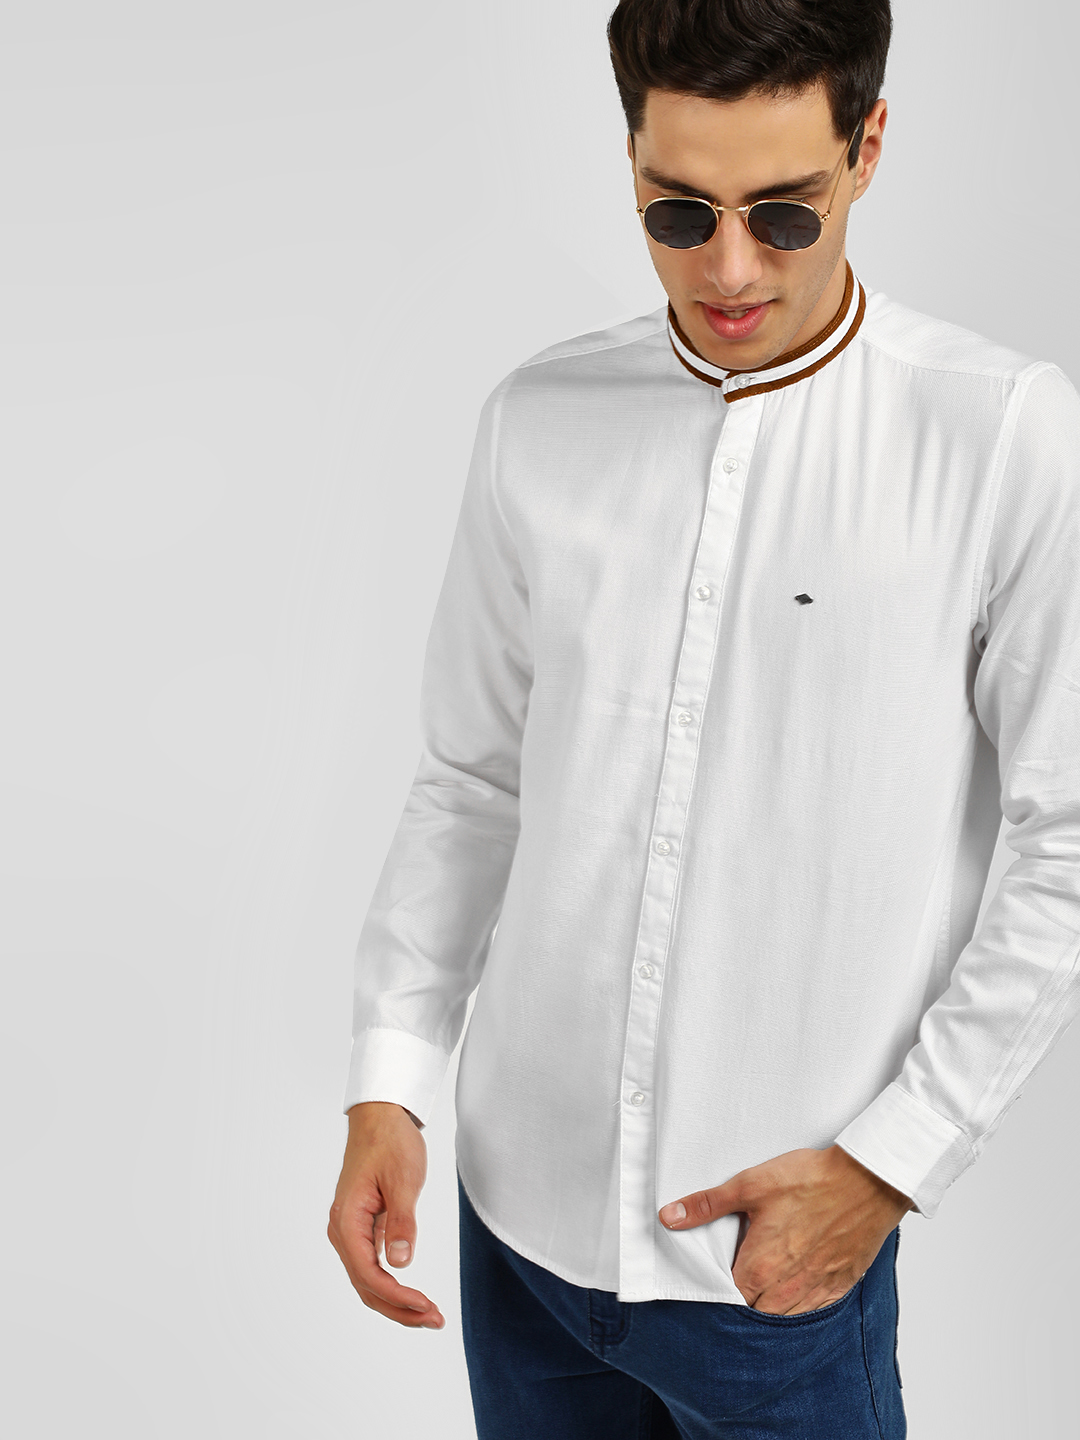 Lee Cooper White Grandad Collar Slim Shirt 1